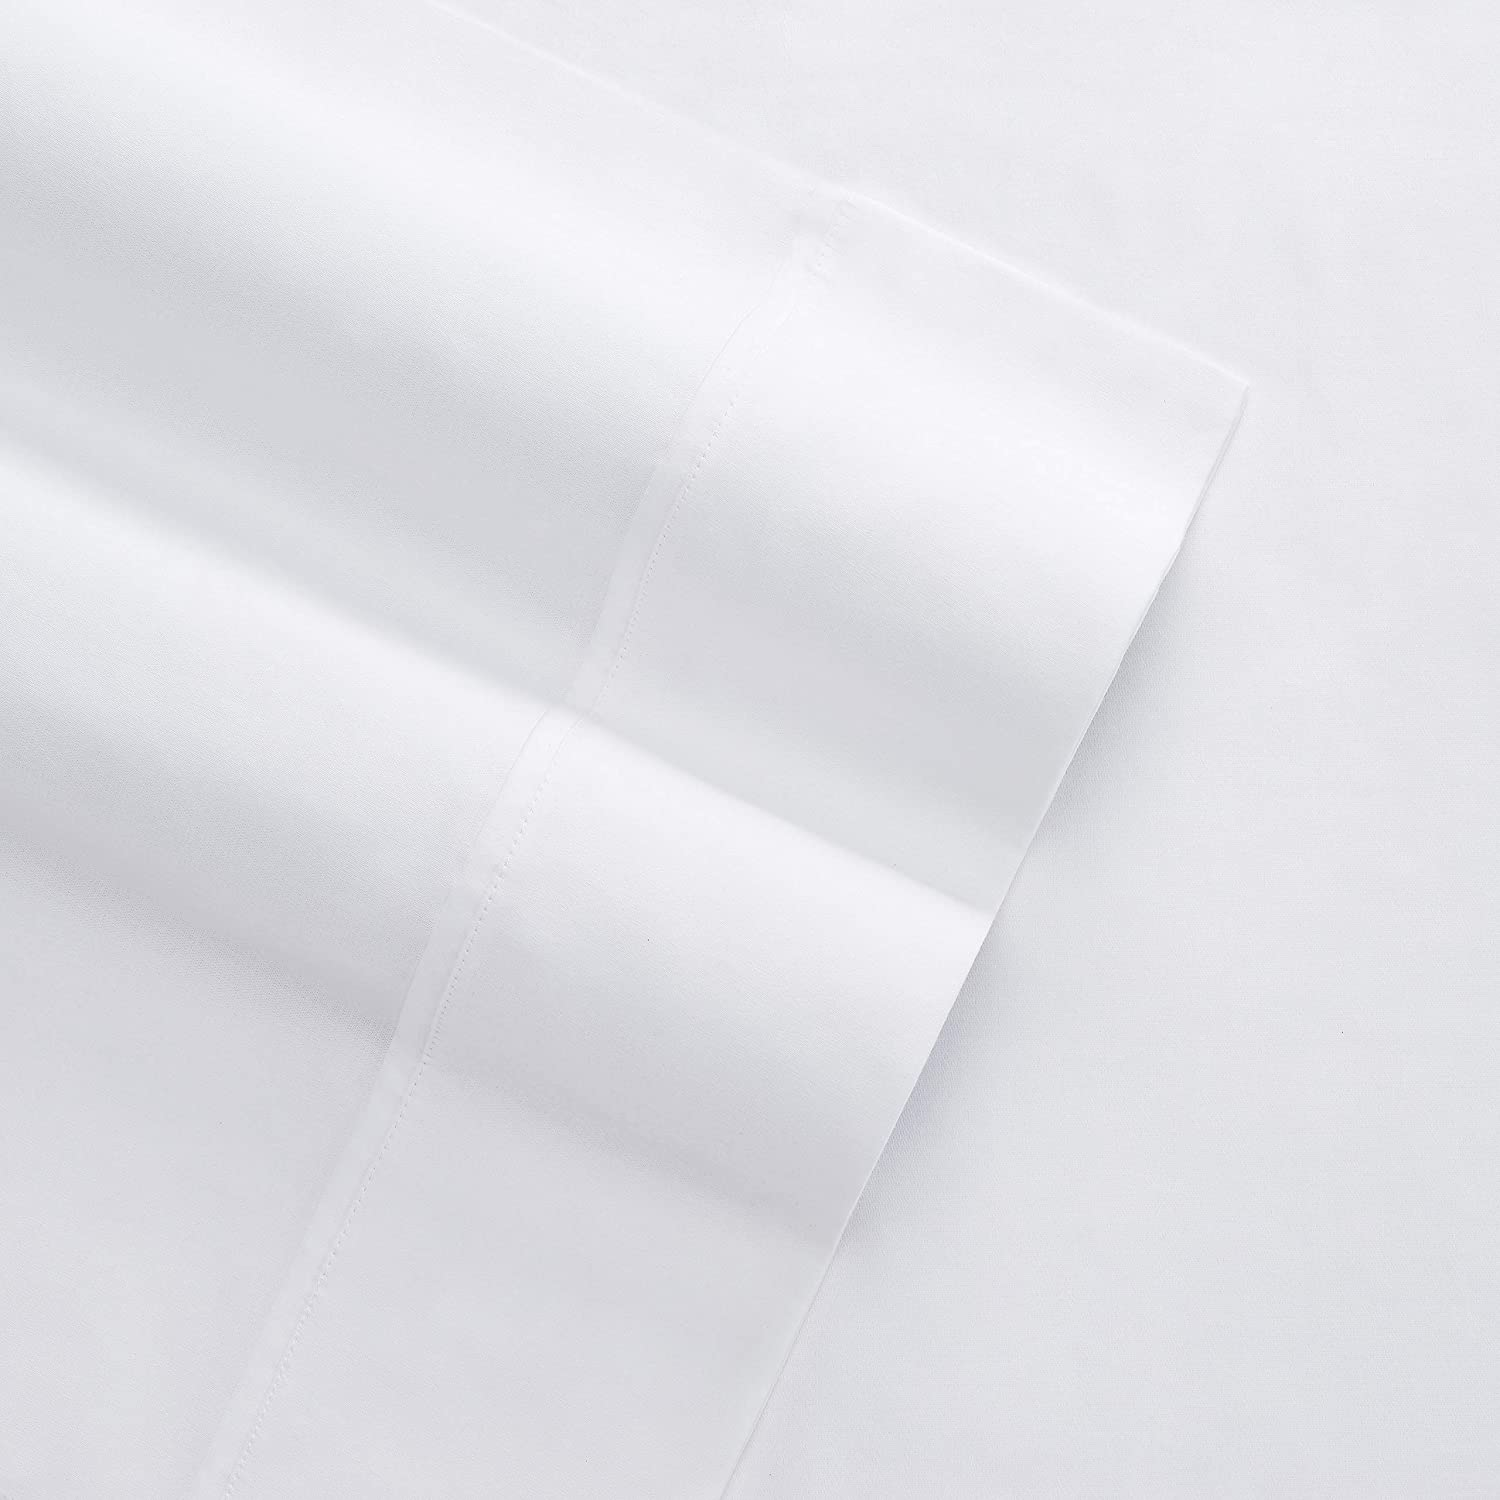 Columbia Organic Cotton Sateen Weave Performance Sheet Set – 300TC with Omni-Wick Moisture Wicking Stay Dry Technology - 100% GOTS Certified Organic Cotton – Queen 4-Piece Sheet Set, Bright White